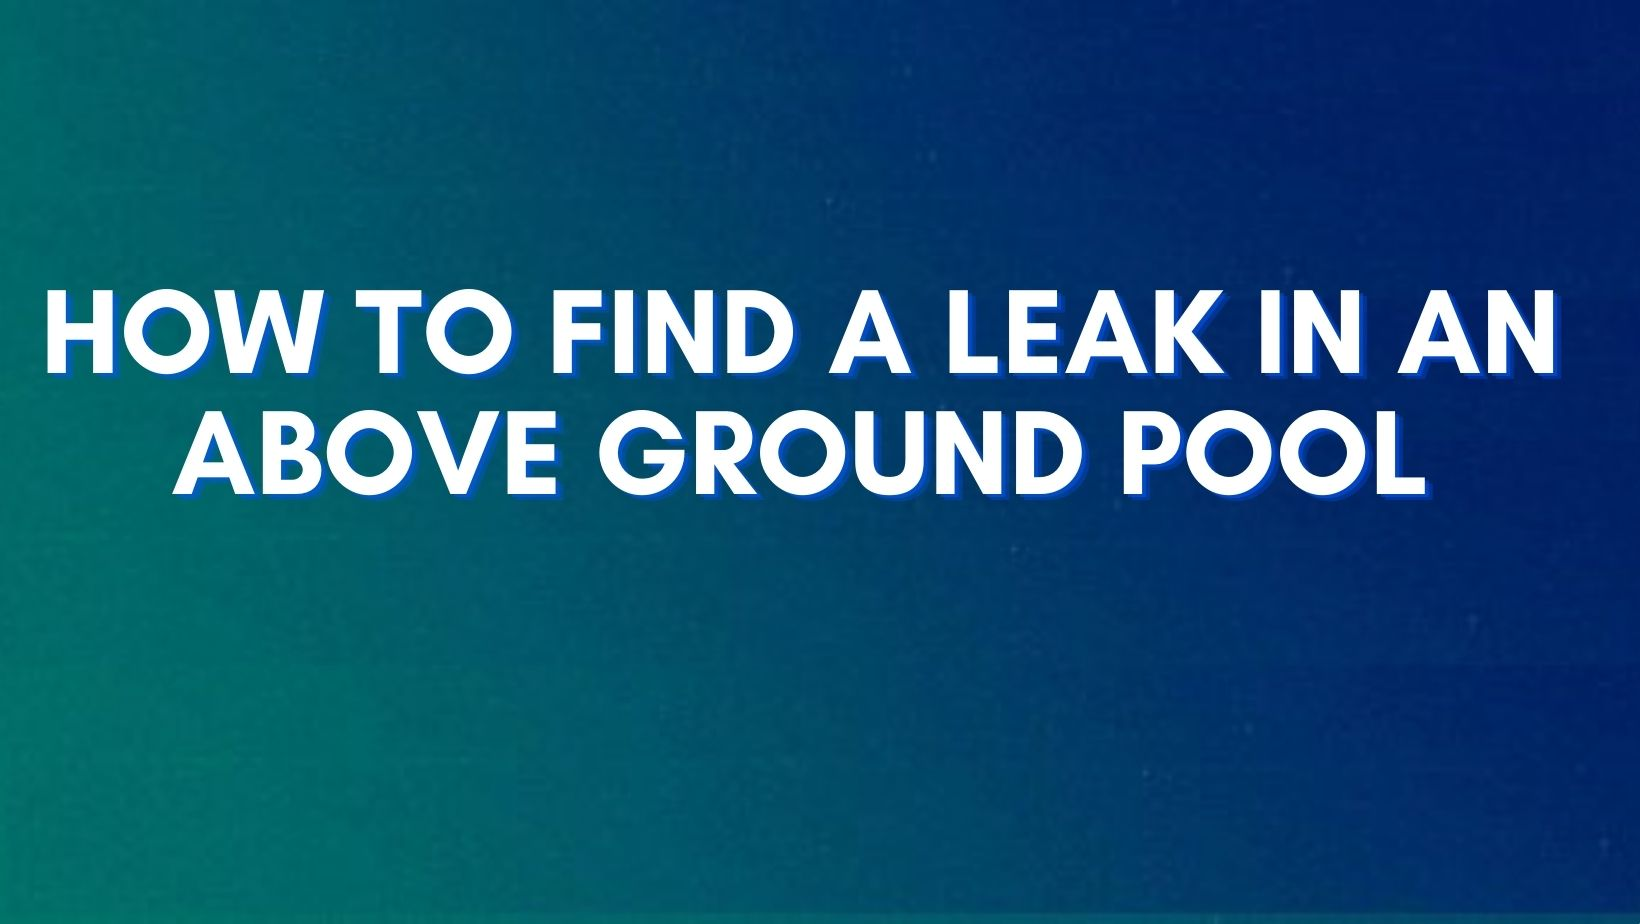 A step-by-step guide to find a leak in an above ground pool